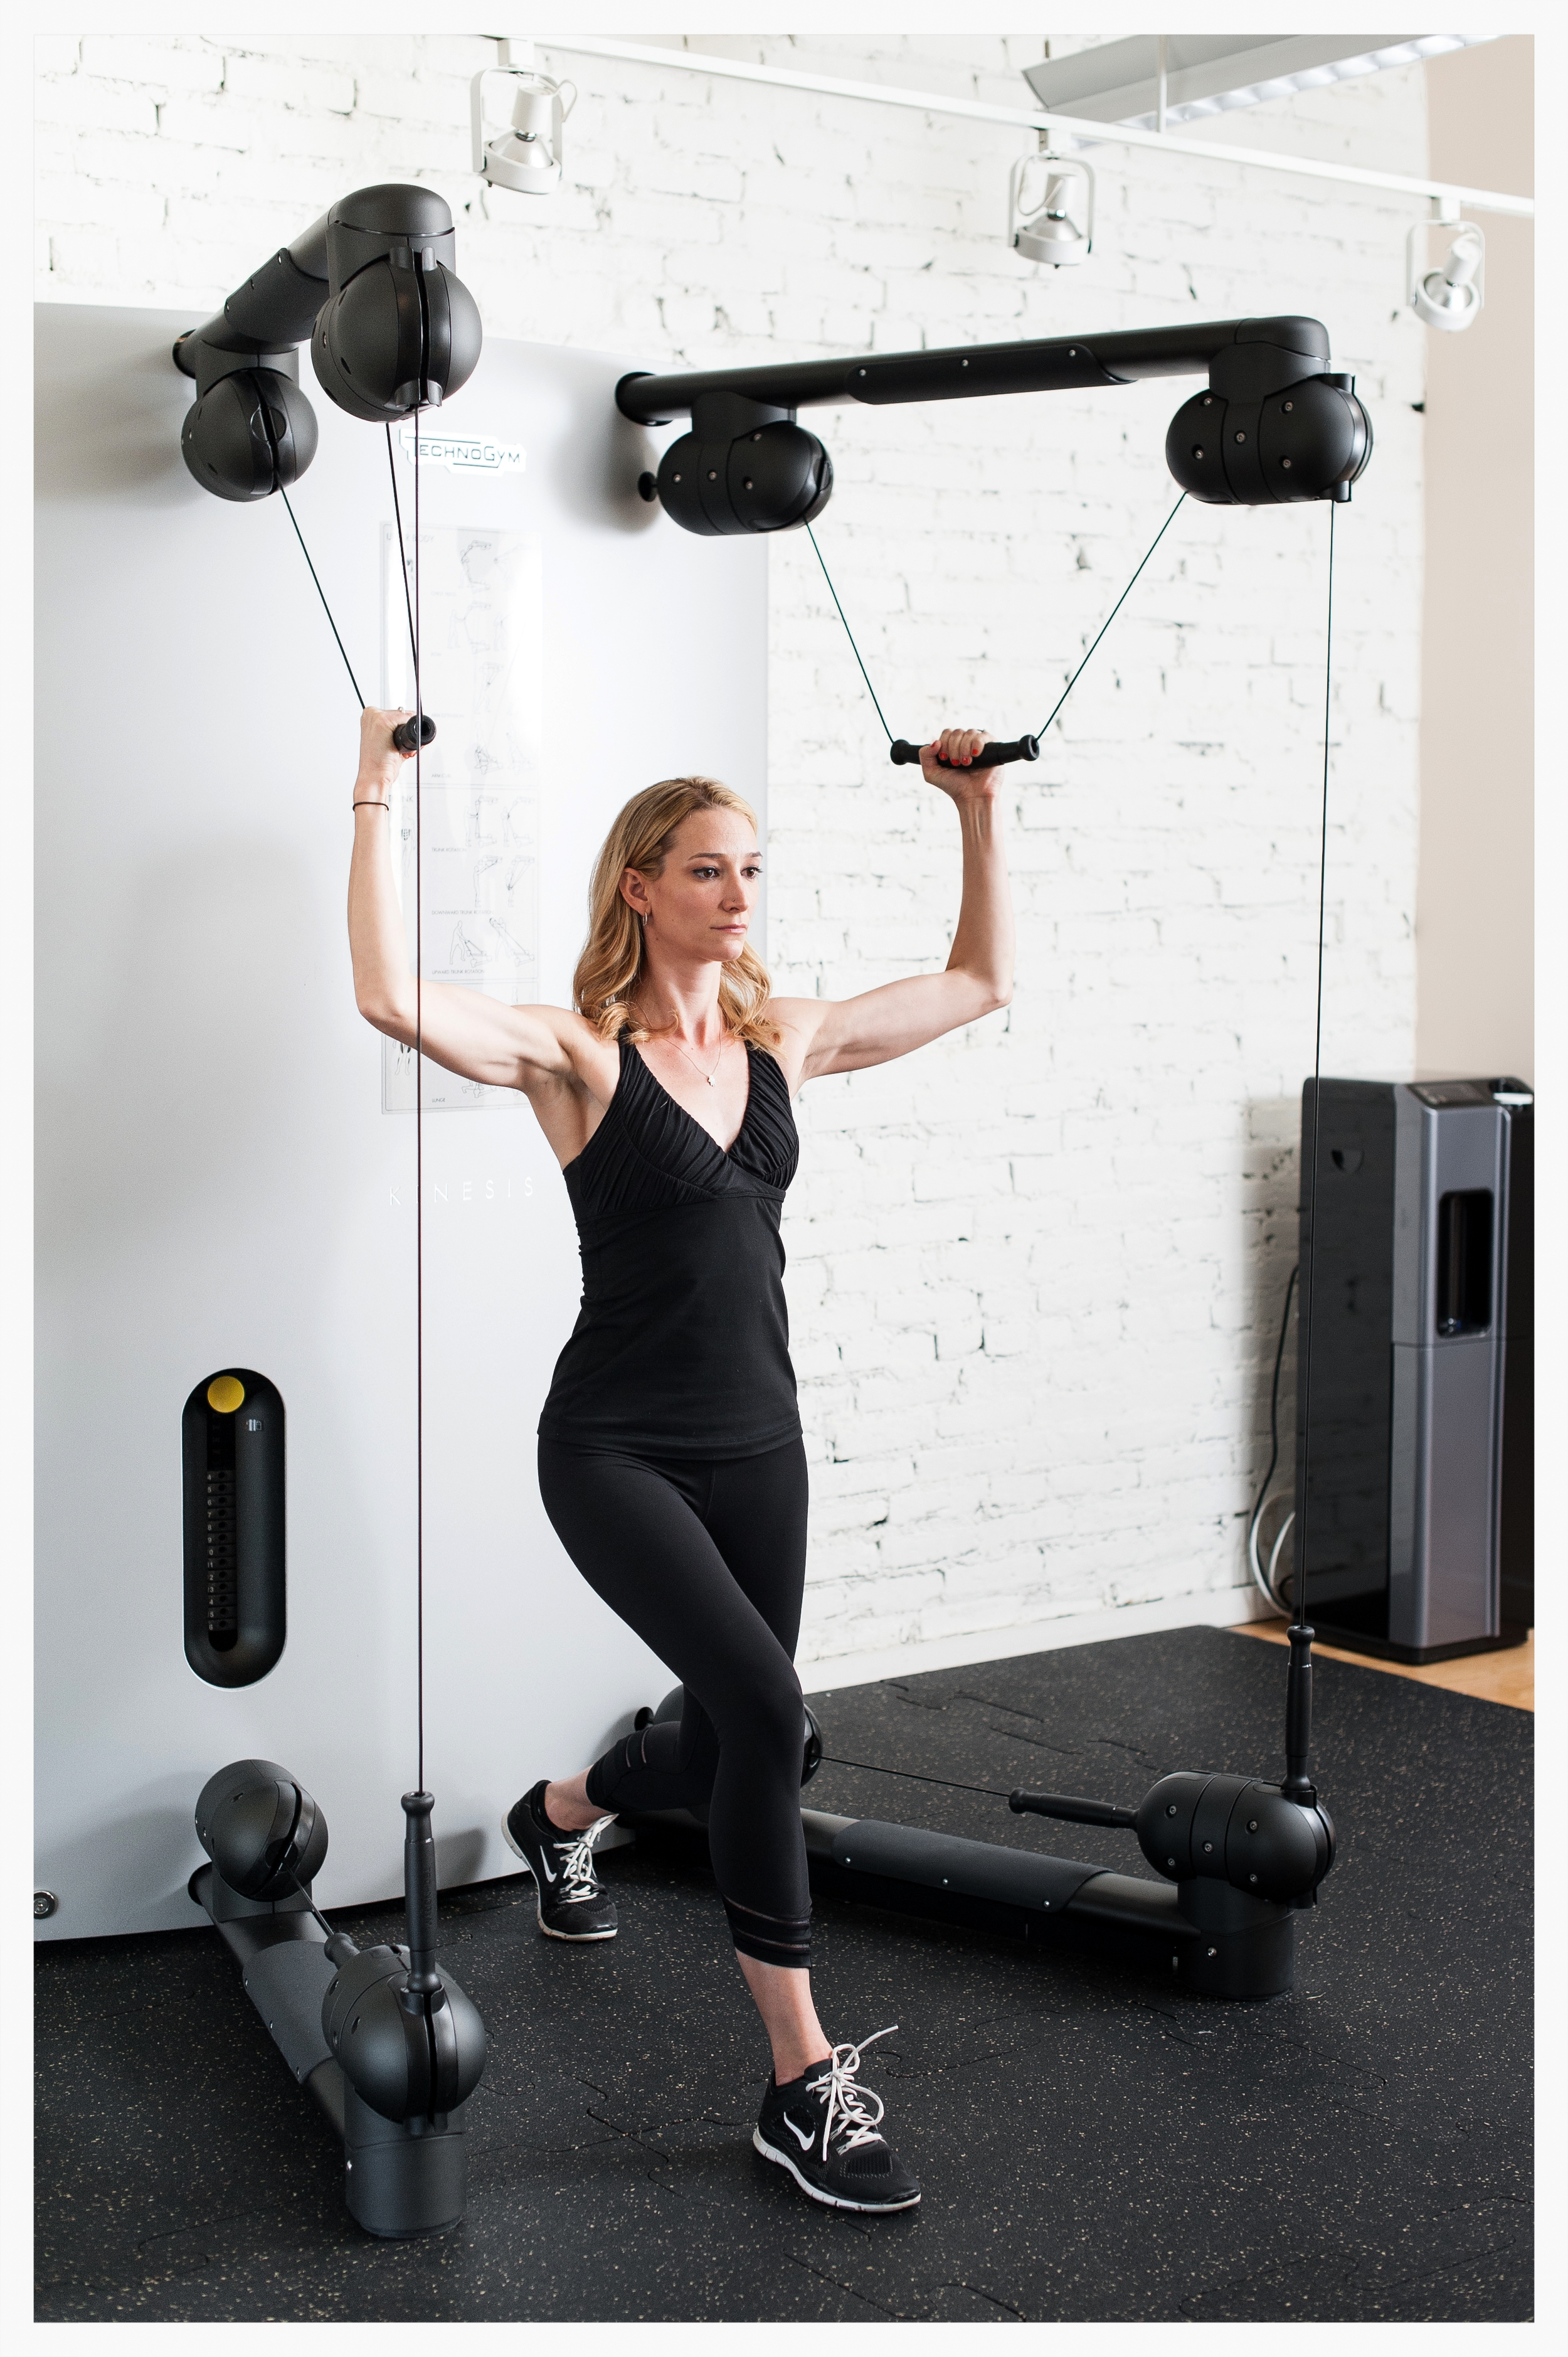 kinesis one resistance training personal lifting functional weights